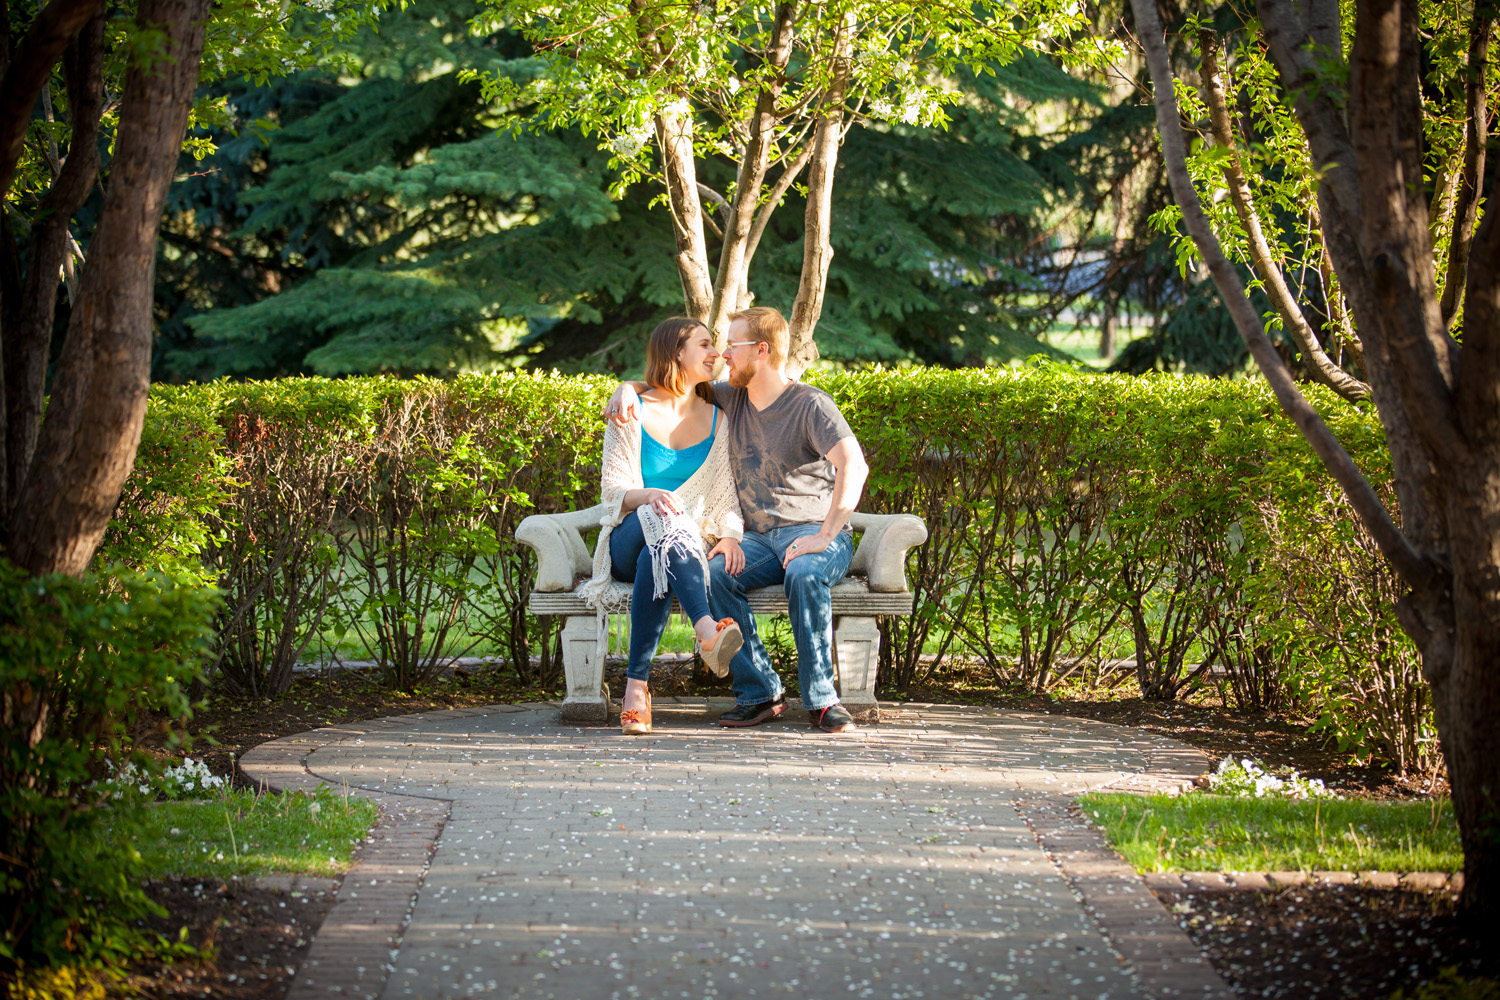 Calgary Relationship photography by Matthew Hicks, Calgary Wedding photographer